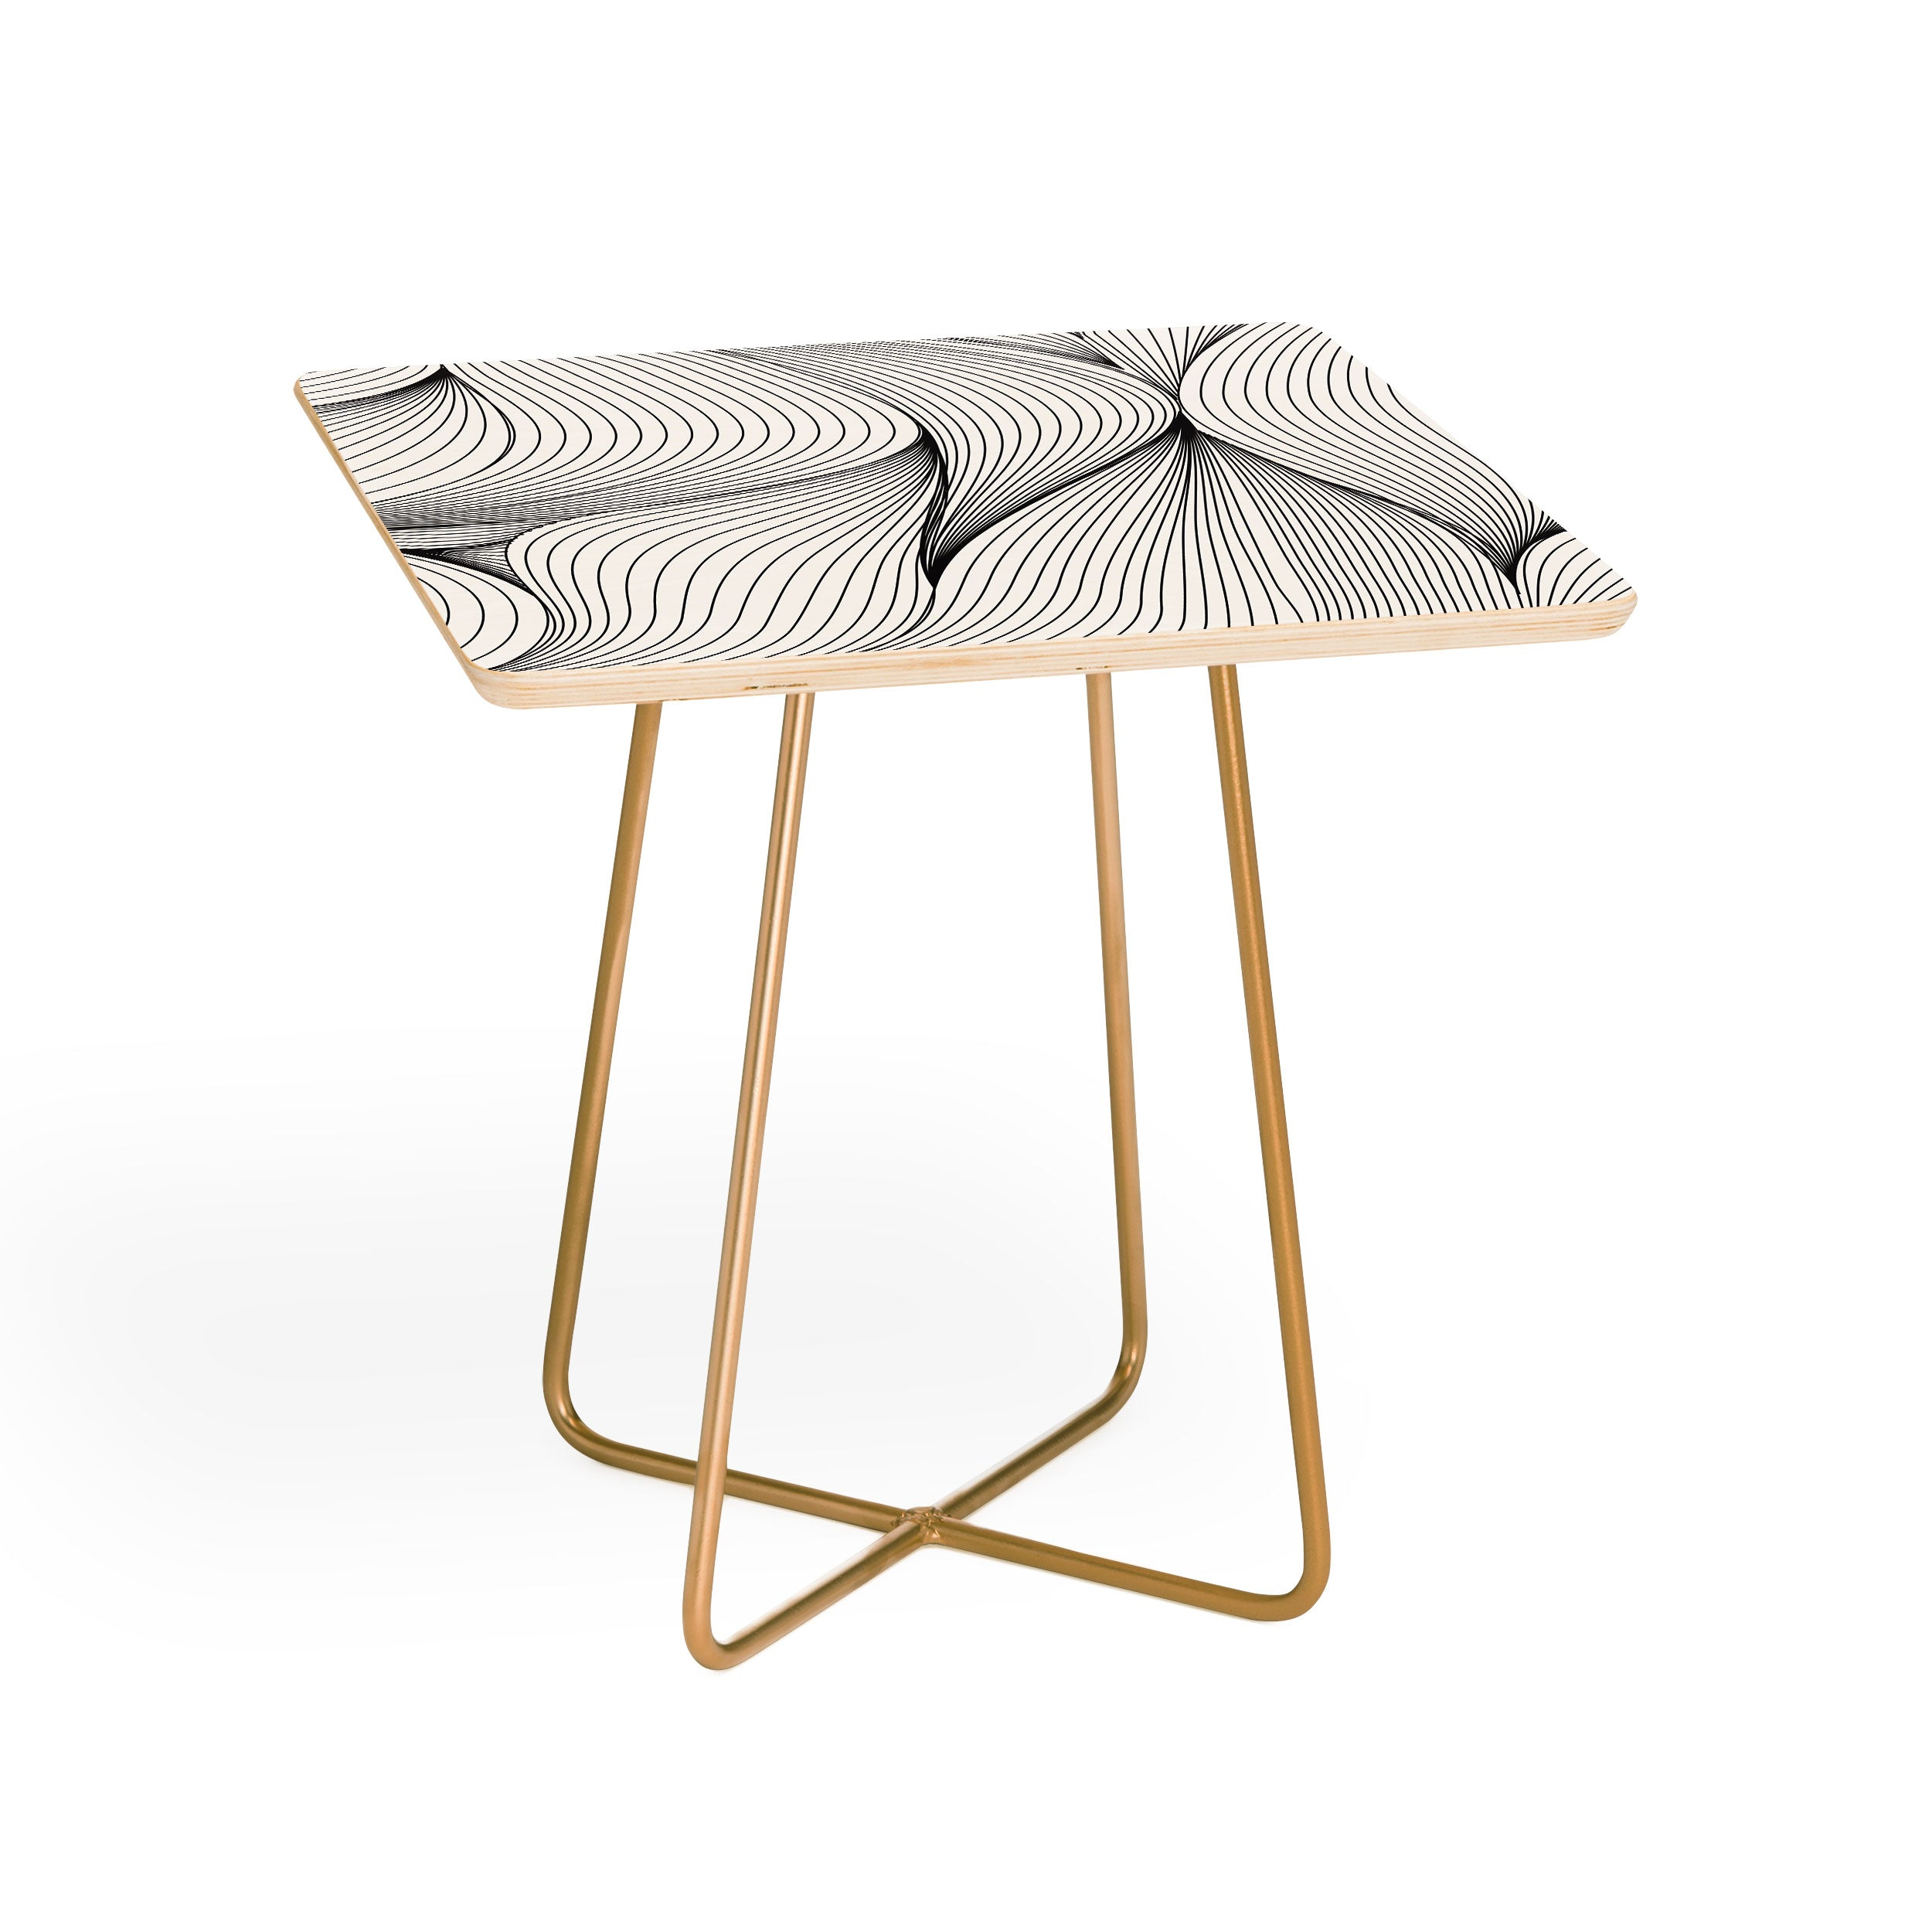 Emanuela Carratoni Seamless Lines Side Table